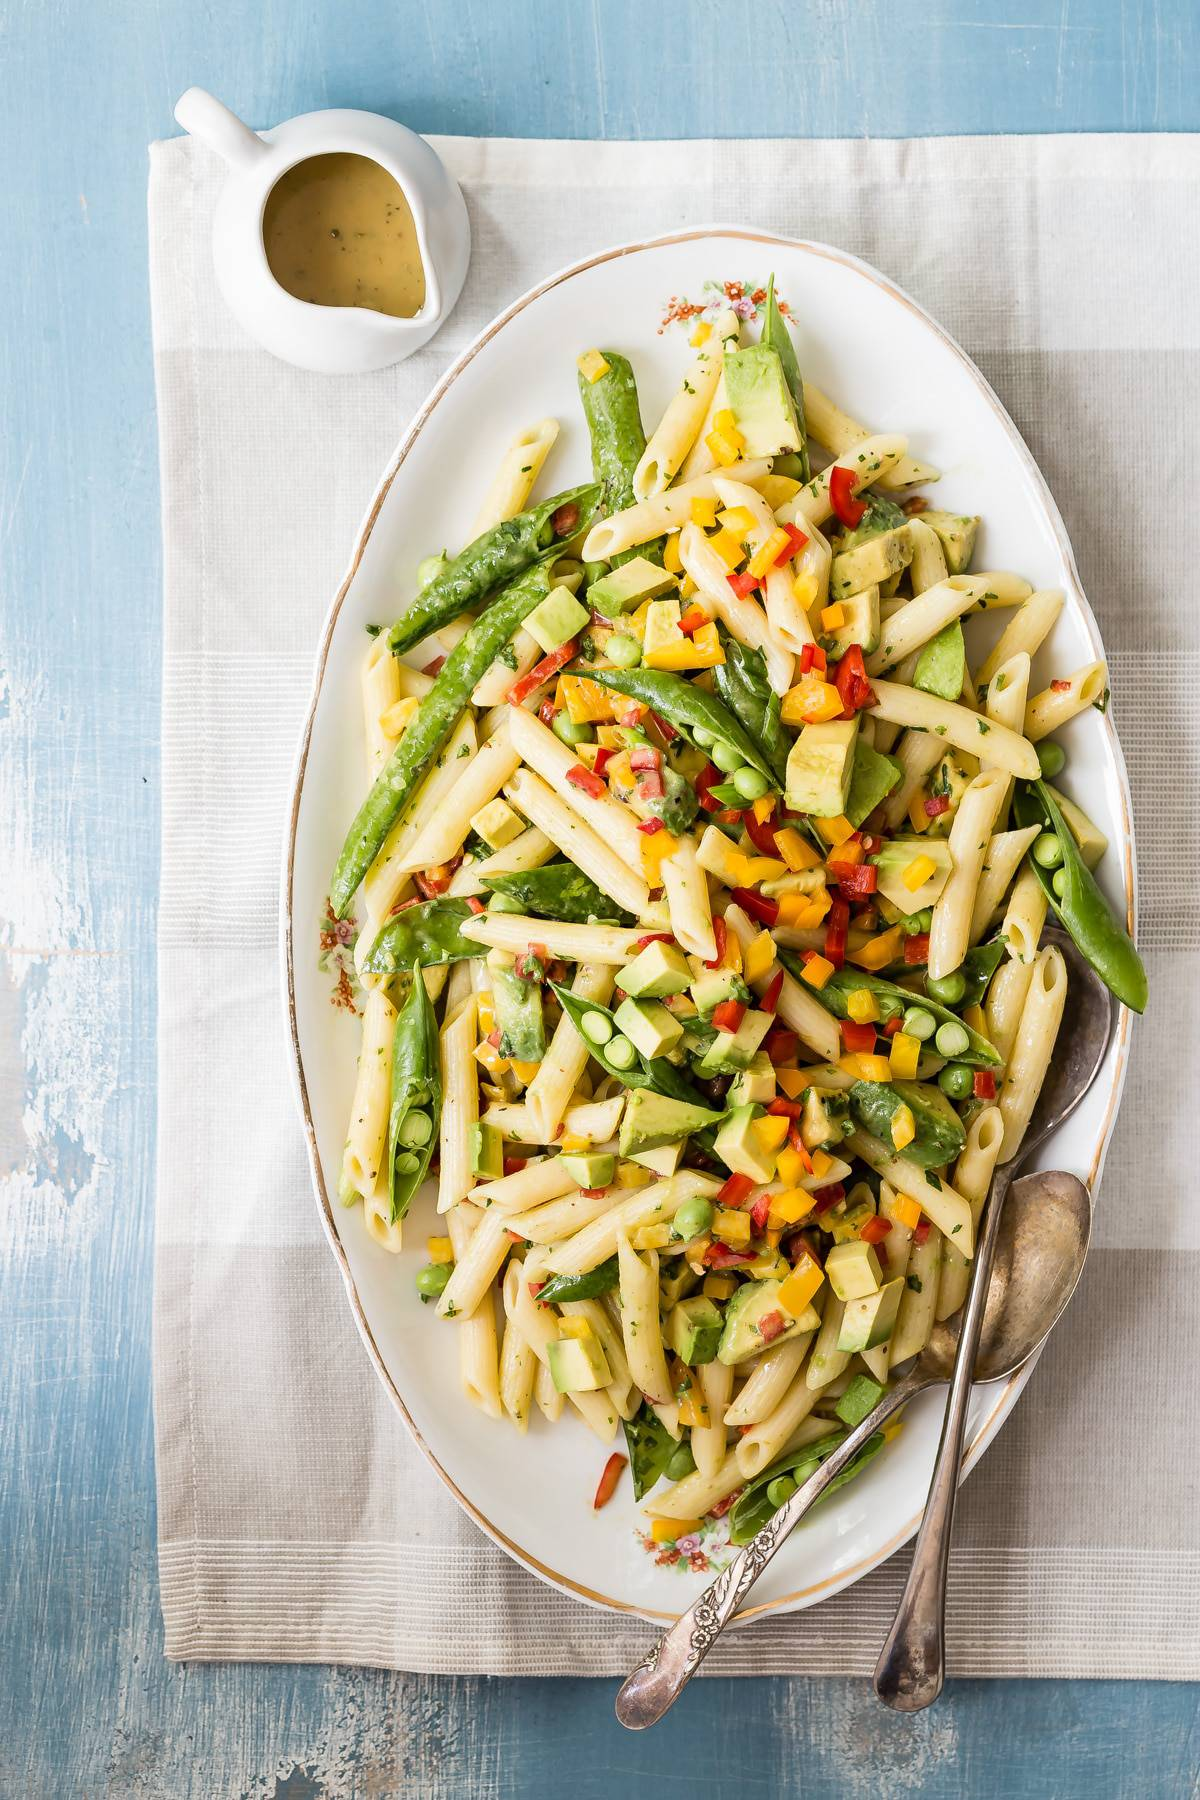 A fresh tasting and delicious avocado pasta salad tossed with a honey dijon mustard dressing. Easy to make and guaranteed to be loved by everyone! #salad #pasta #recipe #potluck #honeymustard #saladdressing #foodnessgracious